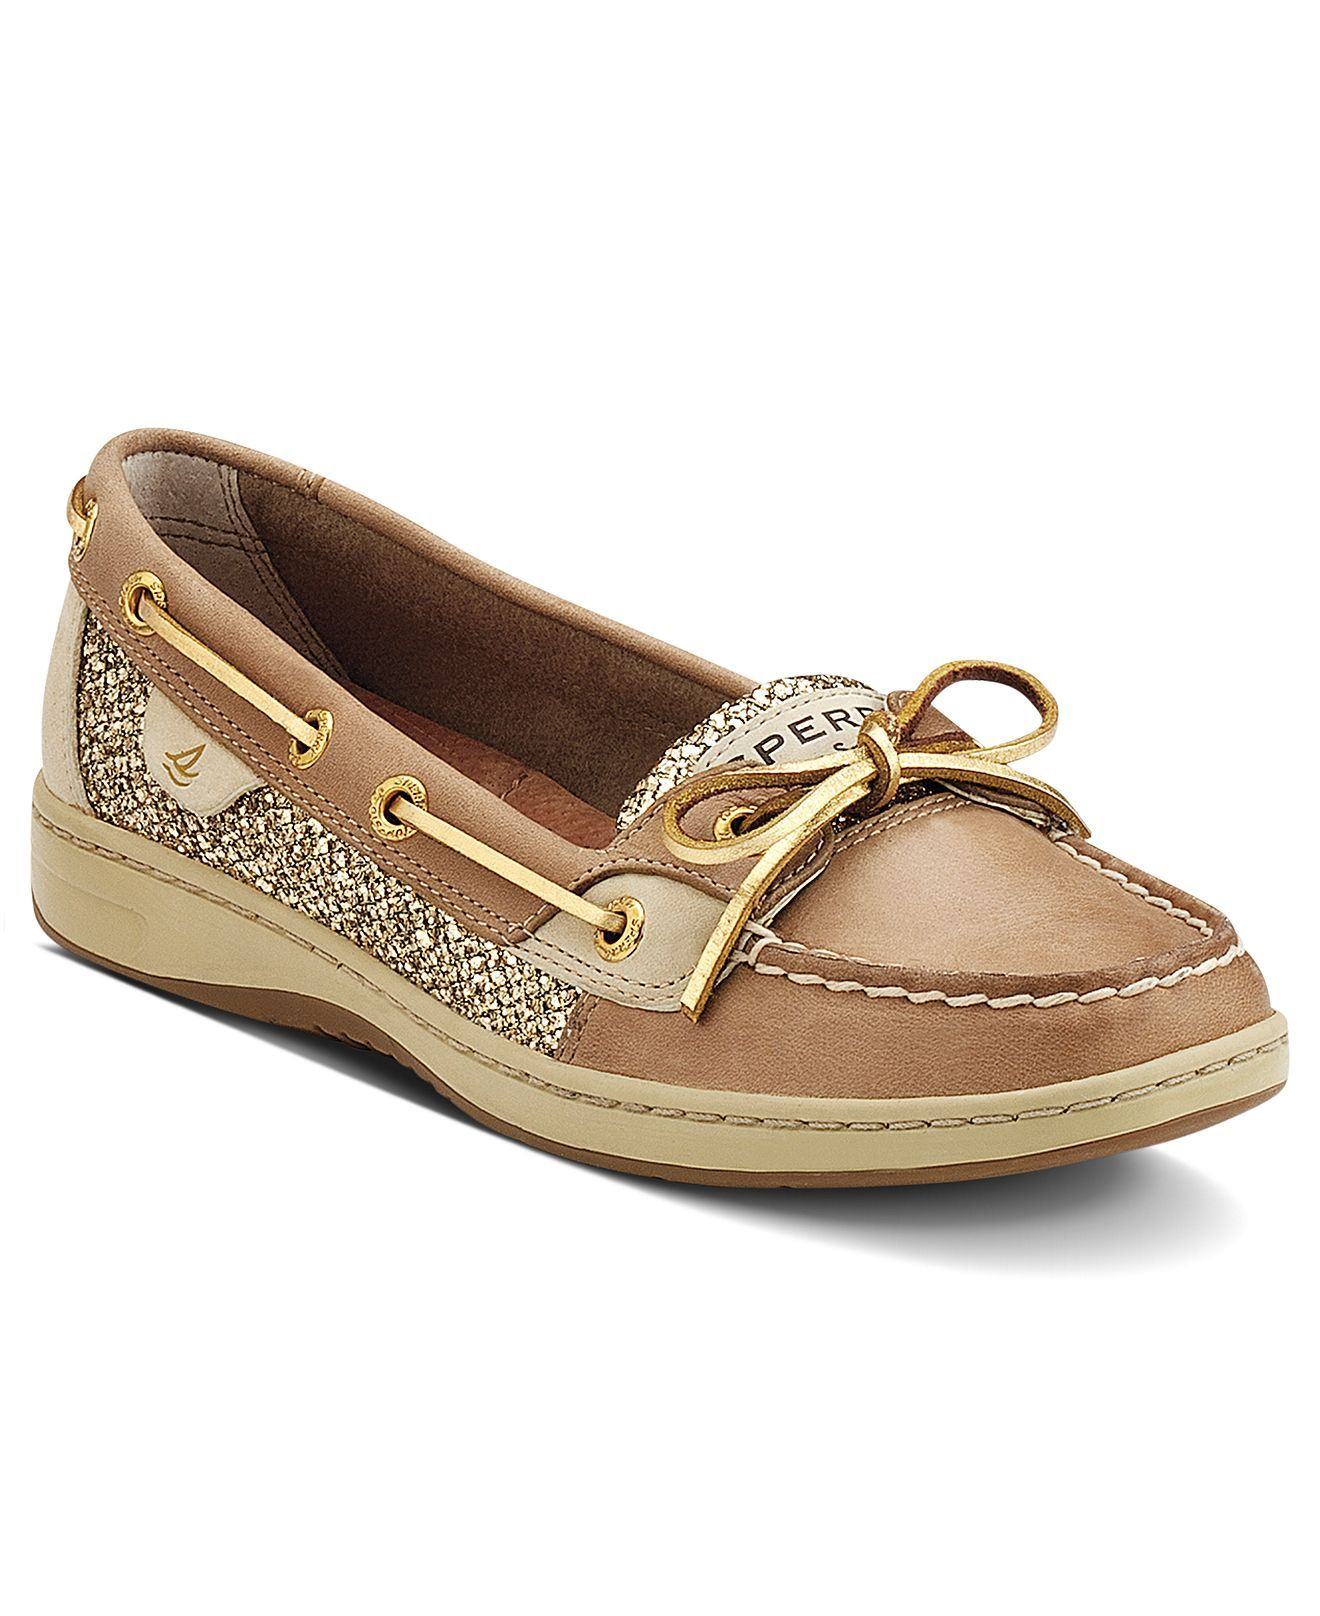 9c1c90e9d97 Sperry Top-Sider - Linen and Gold Glitter Angelfish Boat Shoes ...